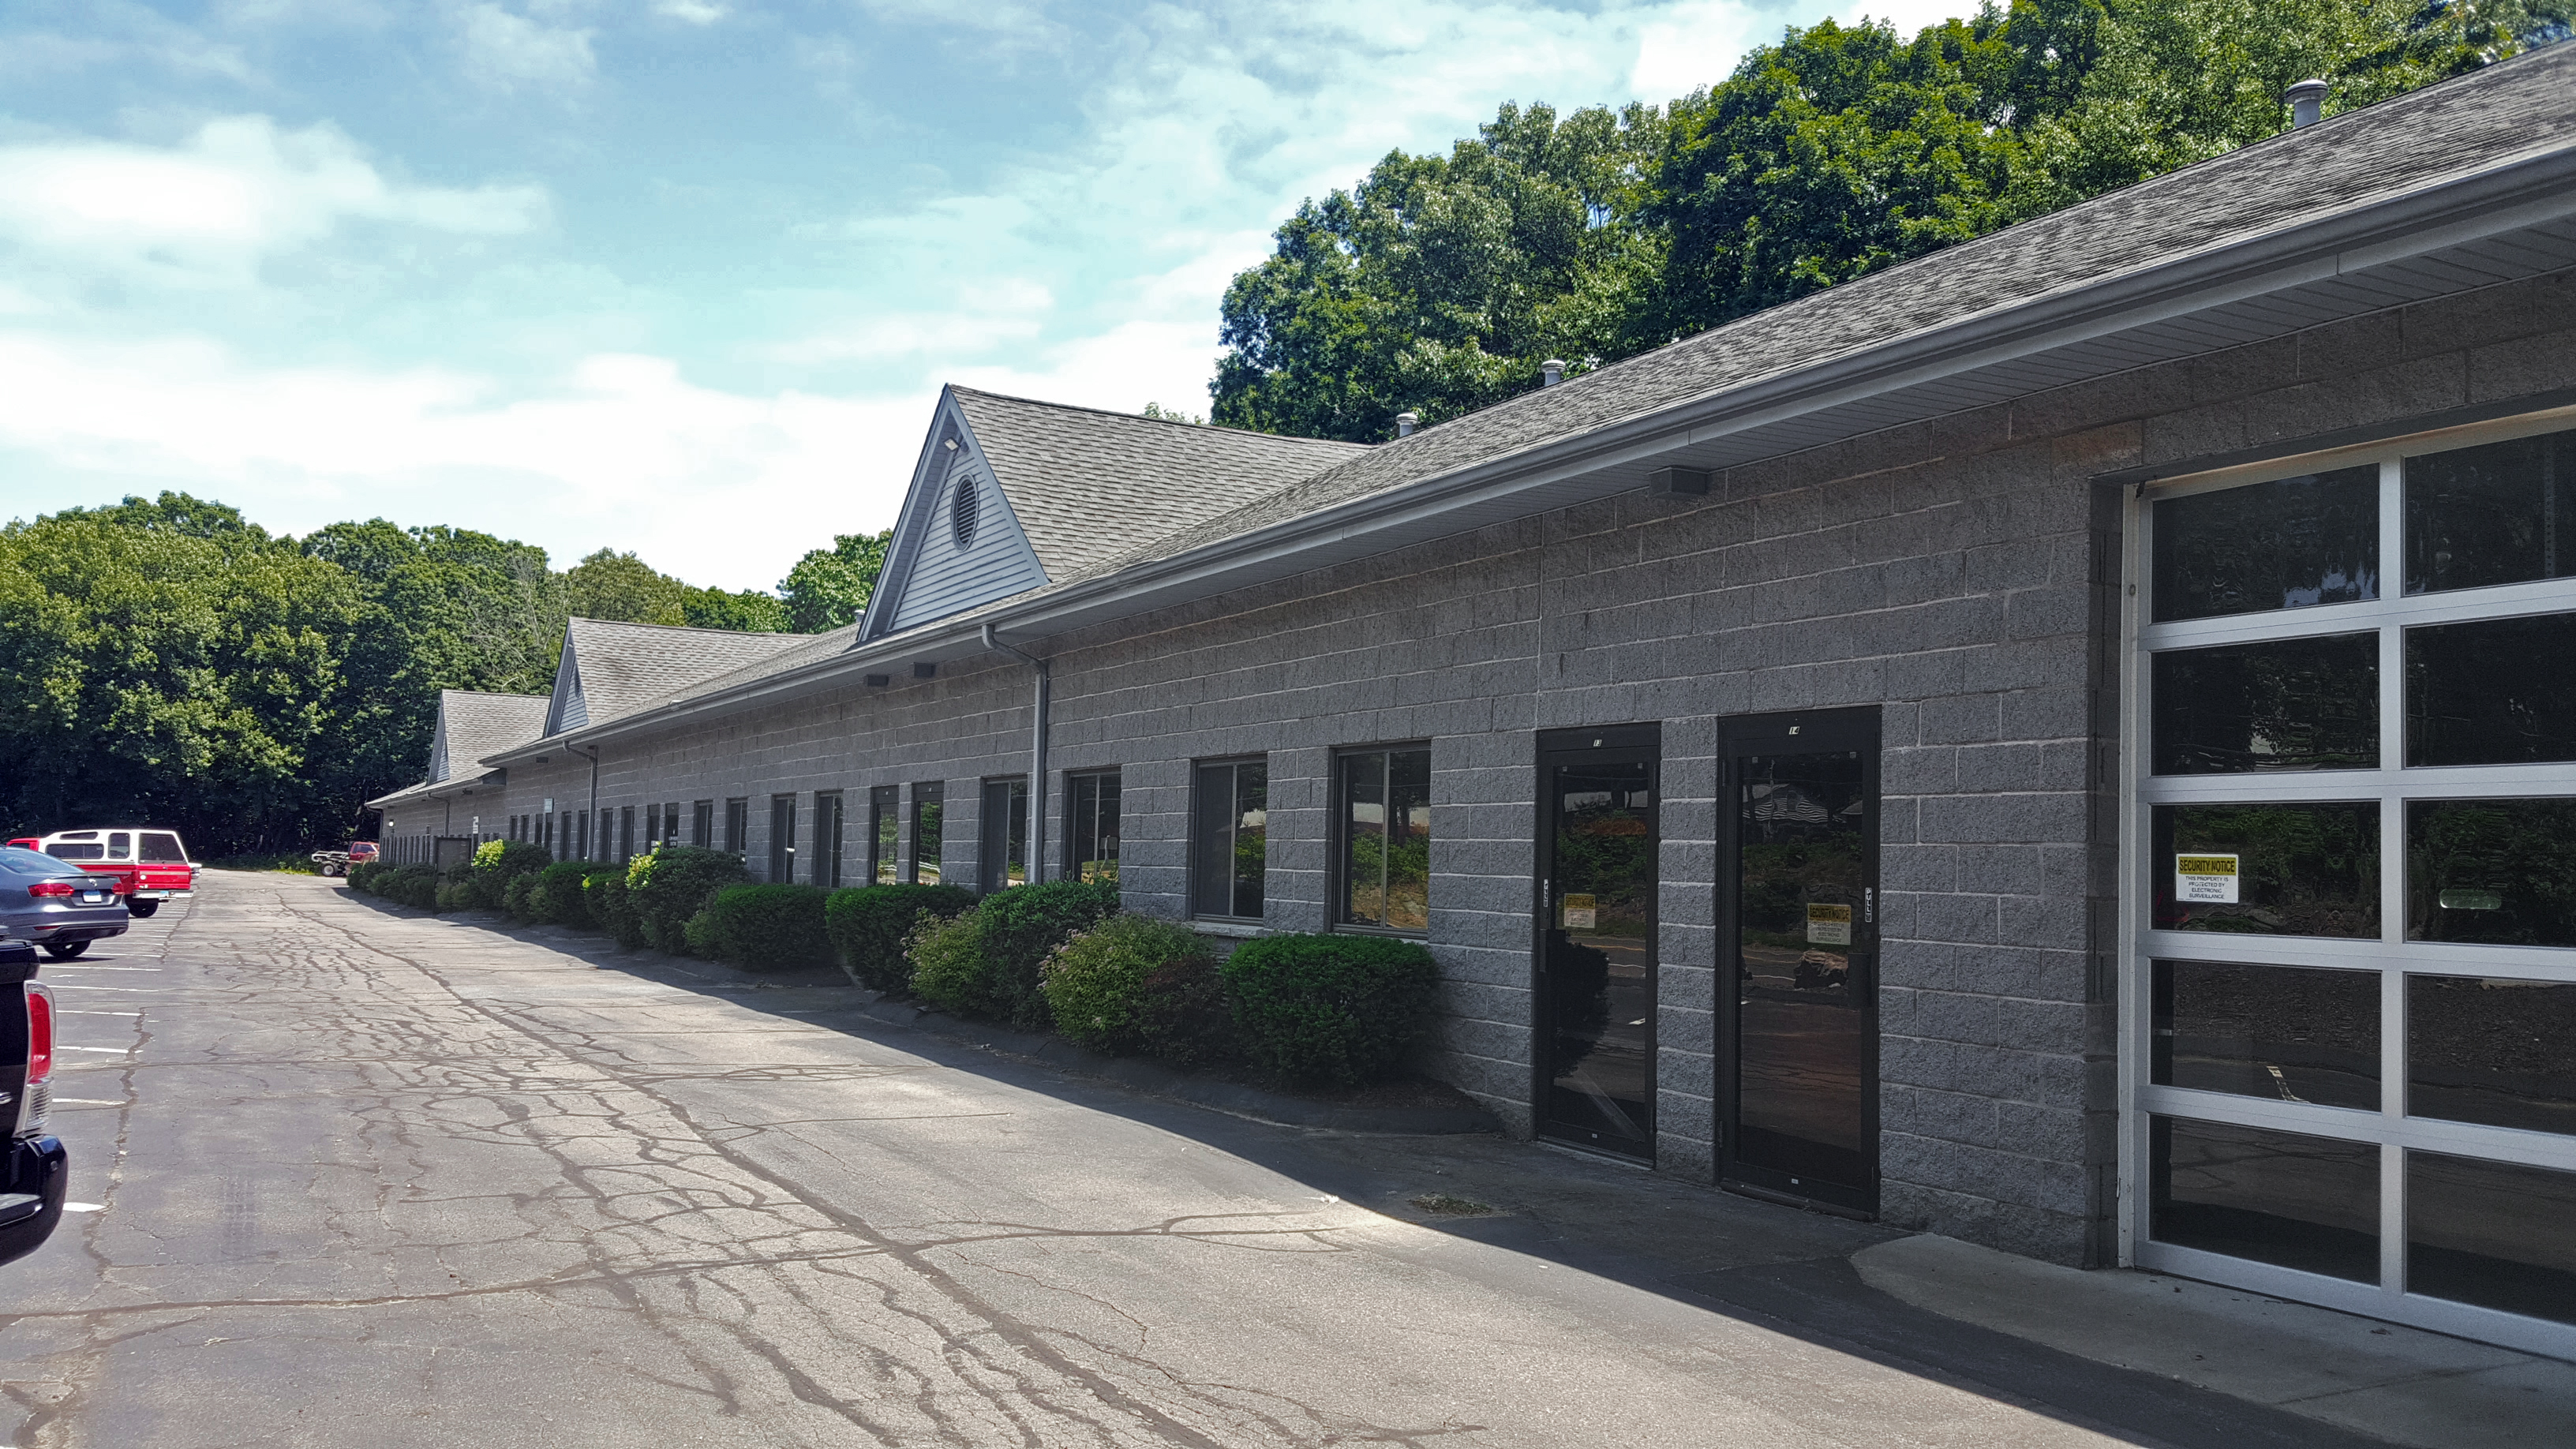 112 Nod Road, Clinton, Connecticut, ,Office,For Lease,Nod Road,1043